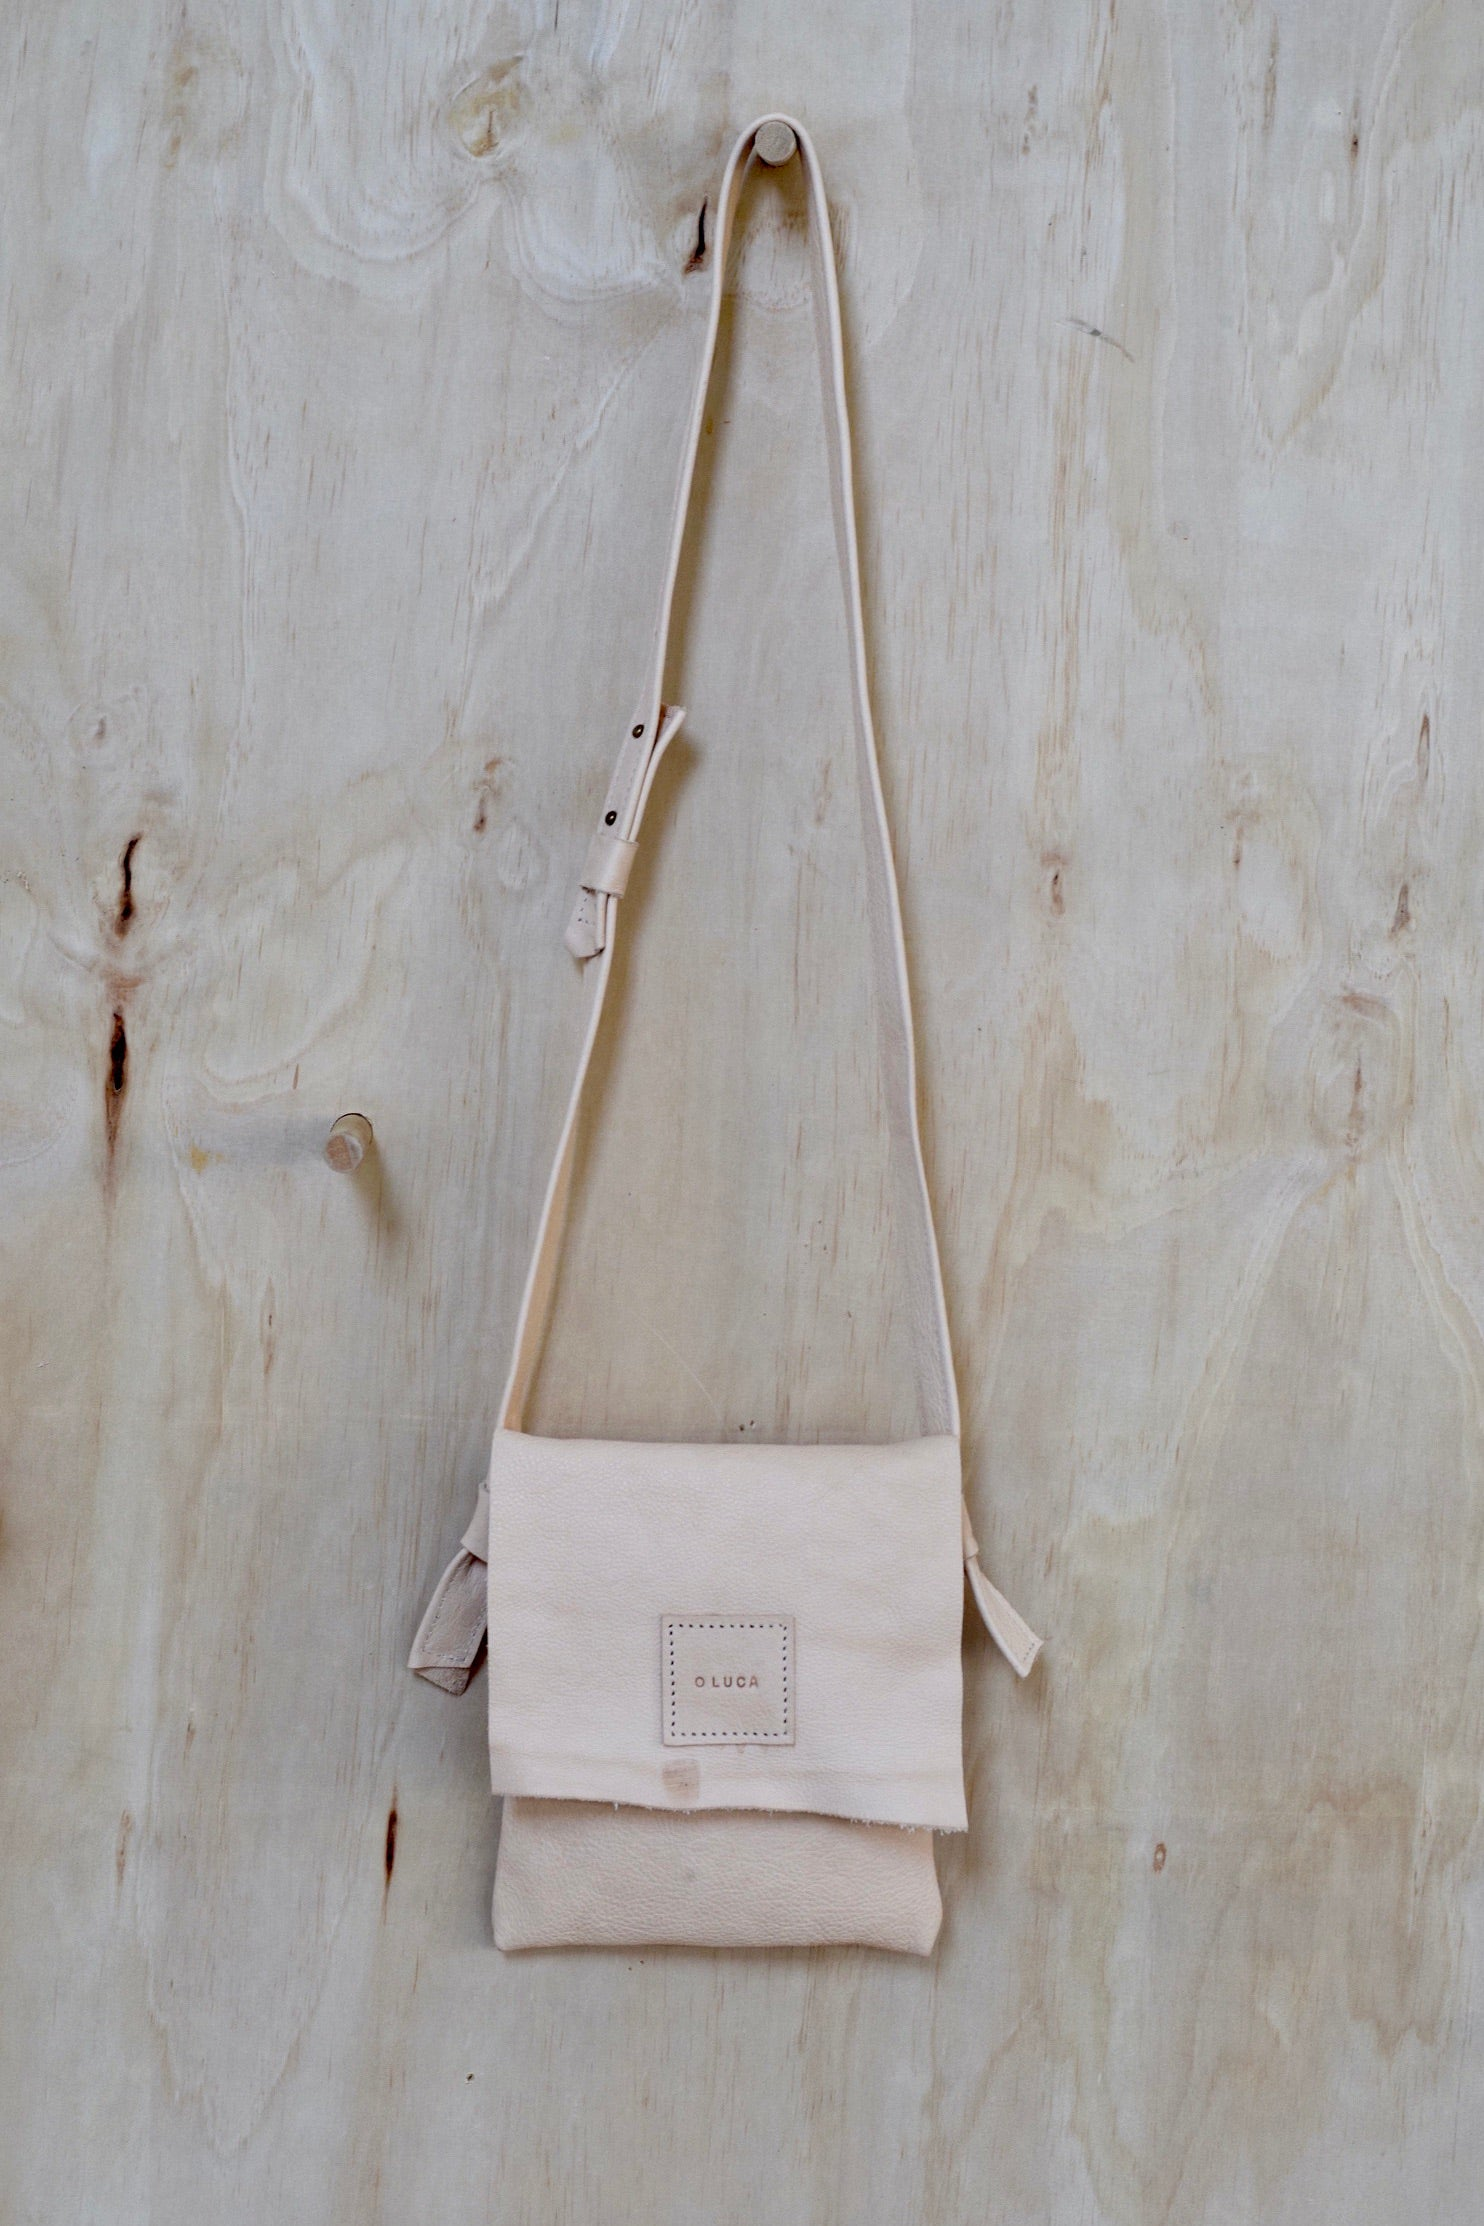 O OSLO - small crossbody purse handbag - natural